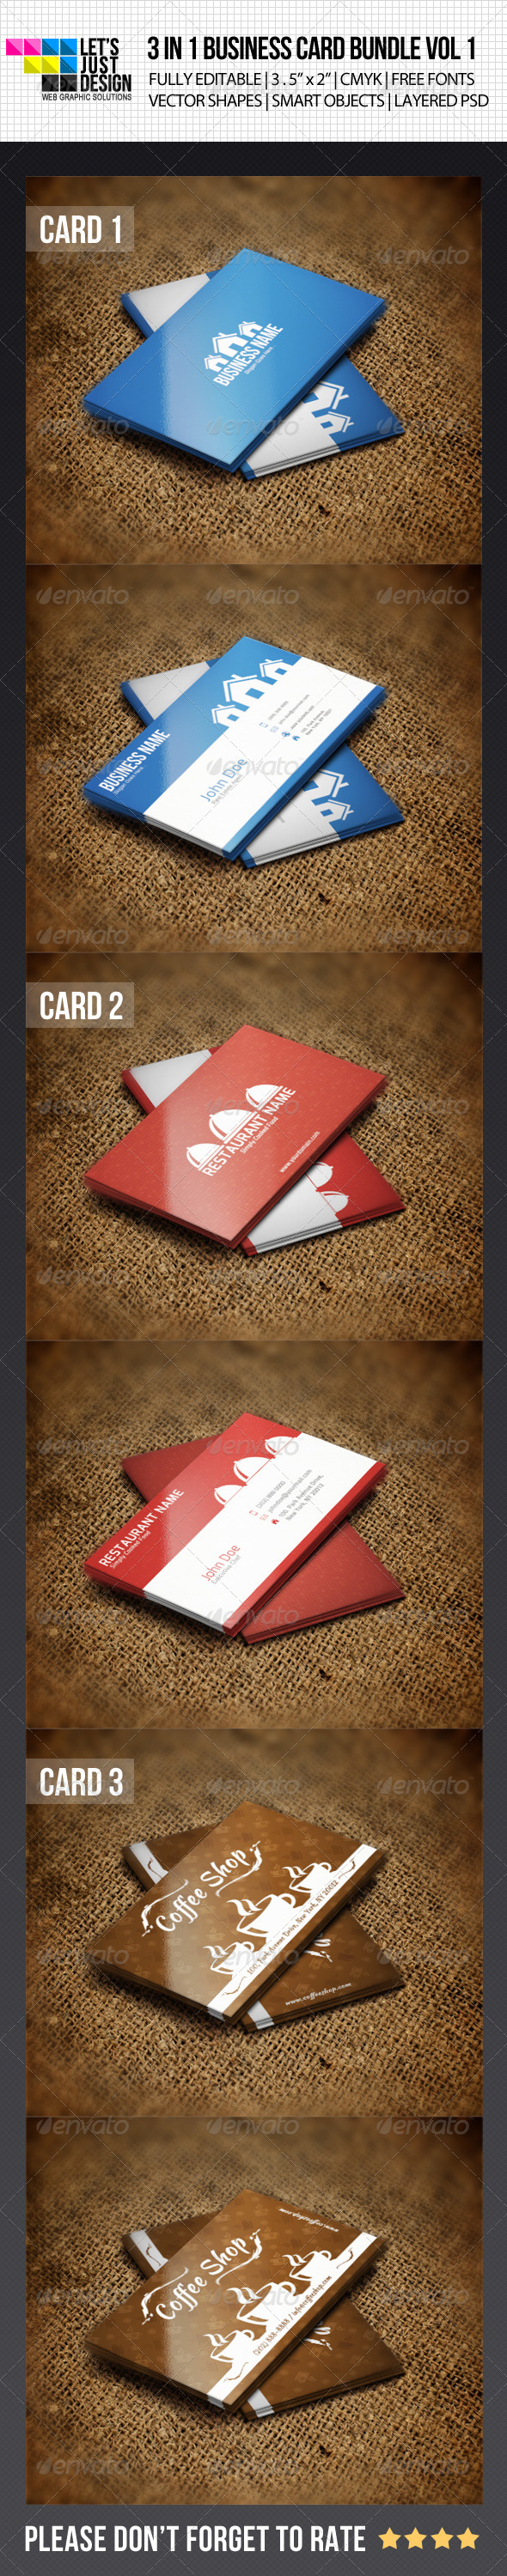 3 IN 1 Business Card Bundle Vol 1